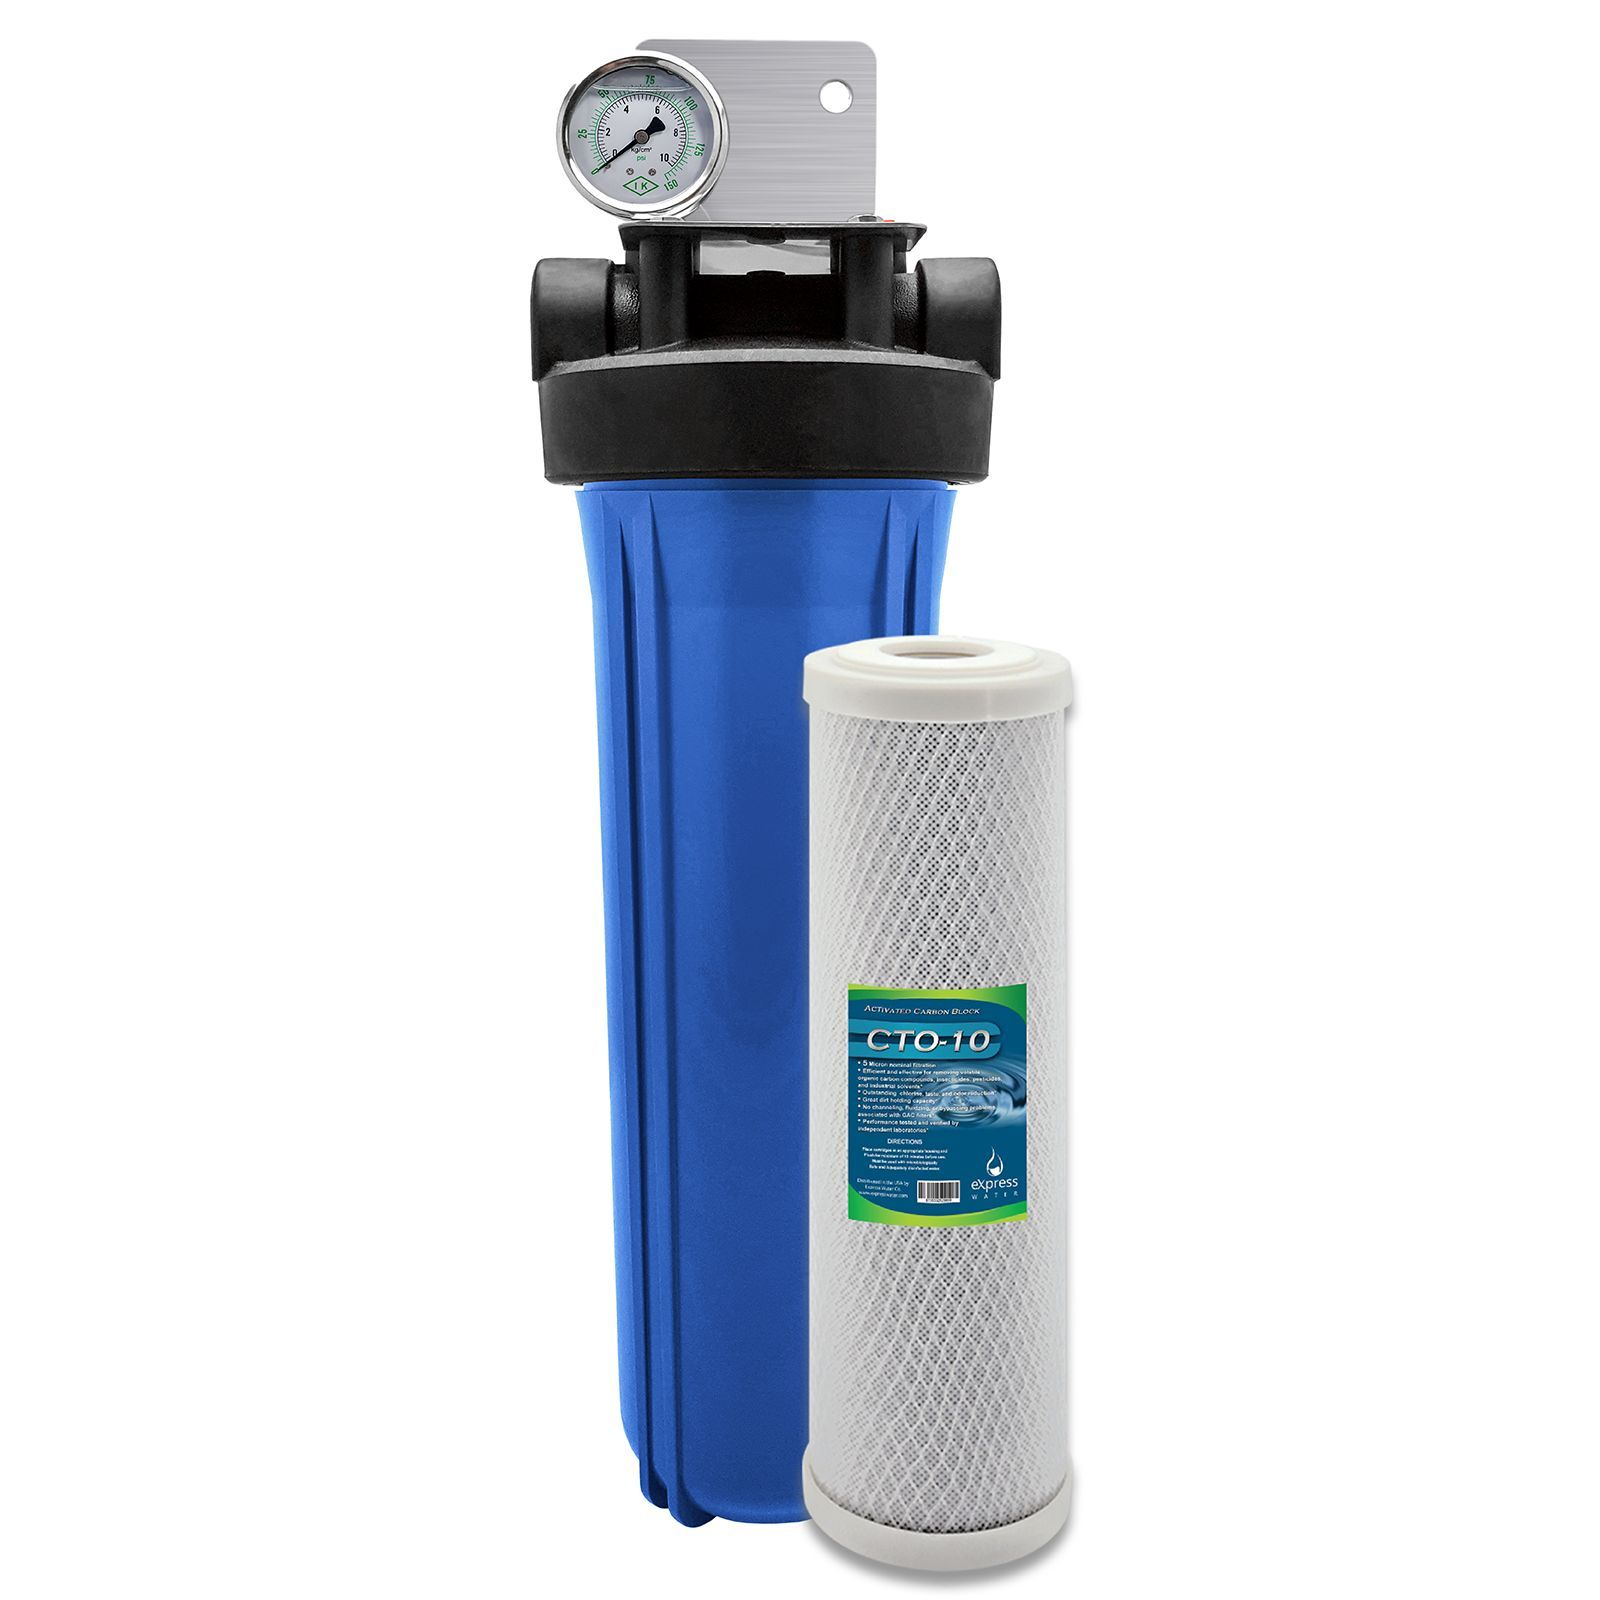 Whole House Water Filter System 1 Stage Carbon Filtration 4 5 Whole House Water Filter Home Water Filtration Water Filtration System